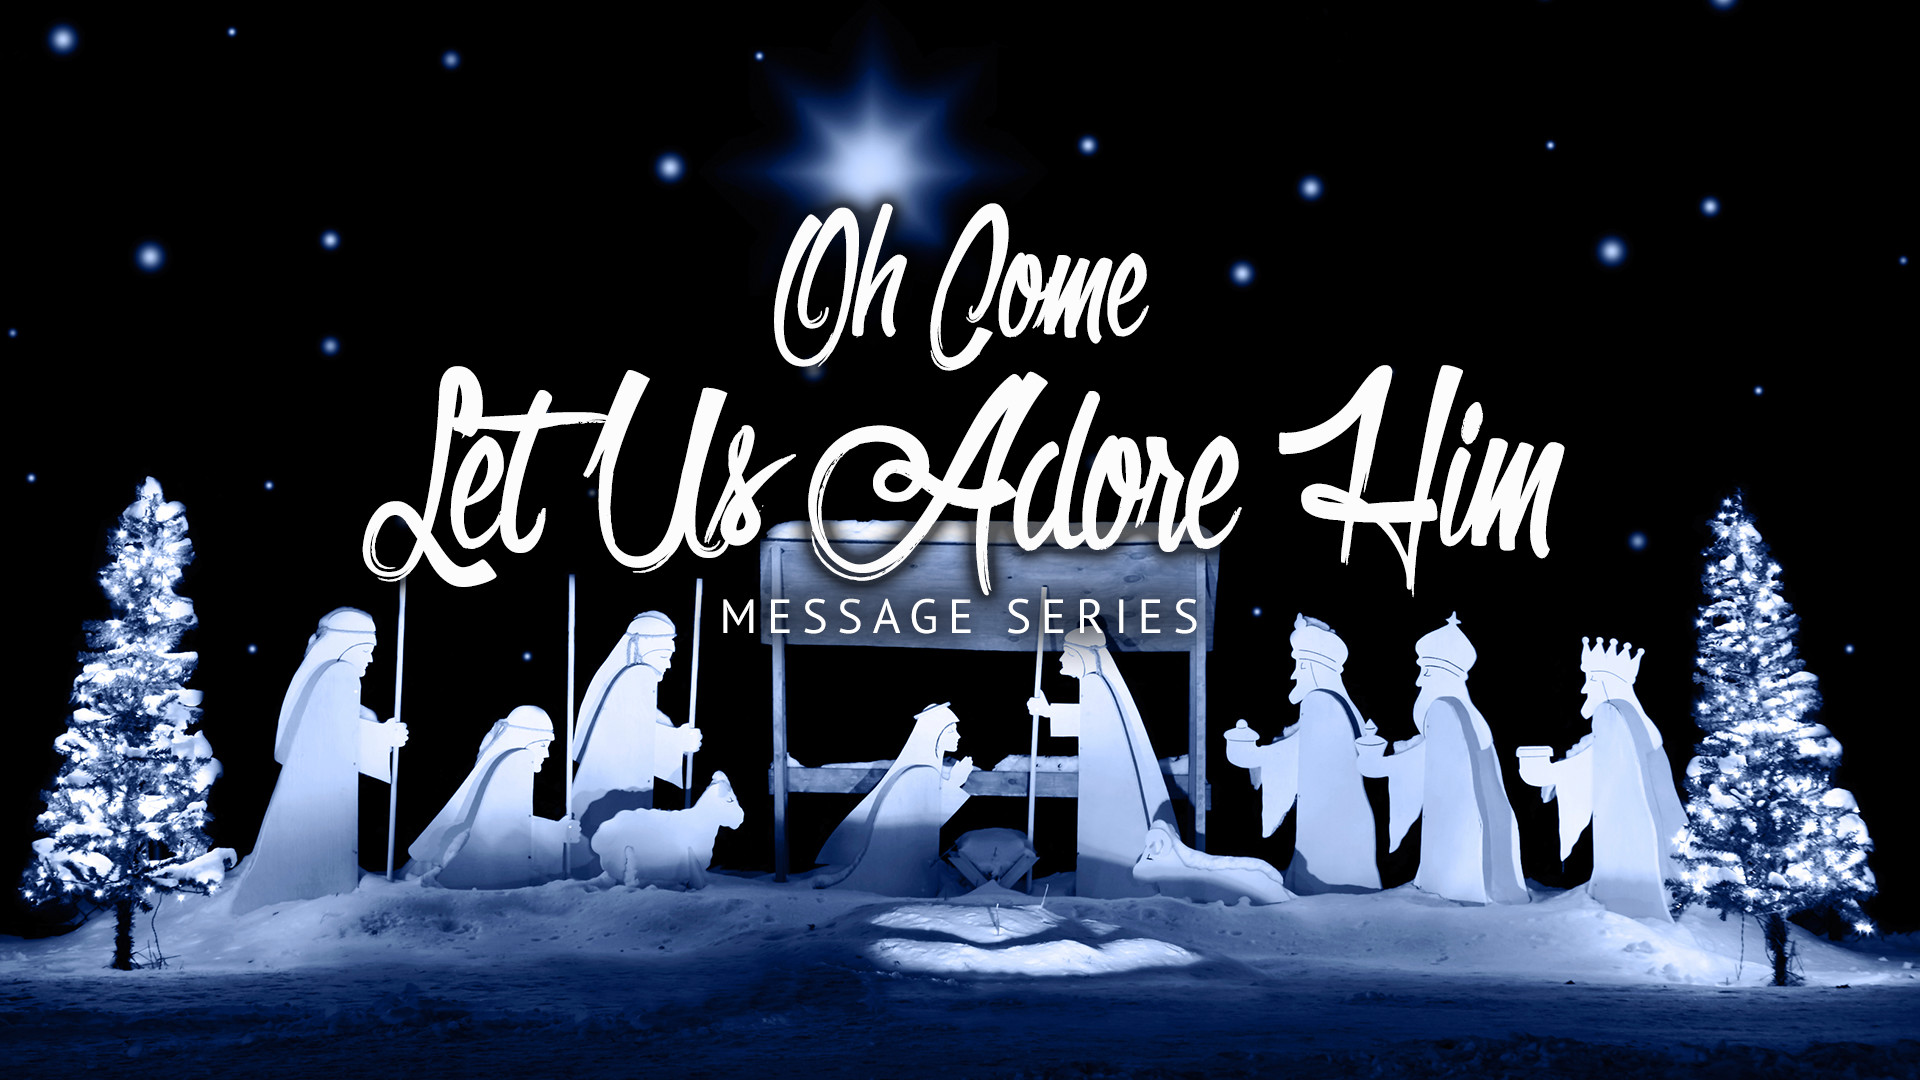 Oh Come, Let Us Adore Him